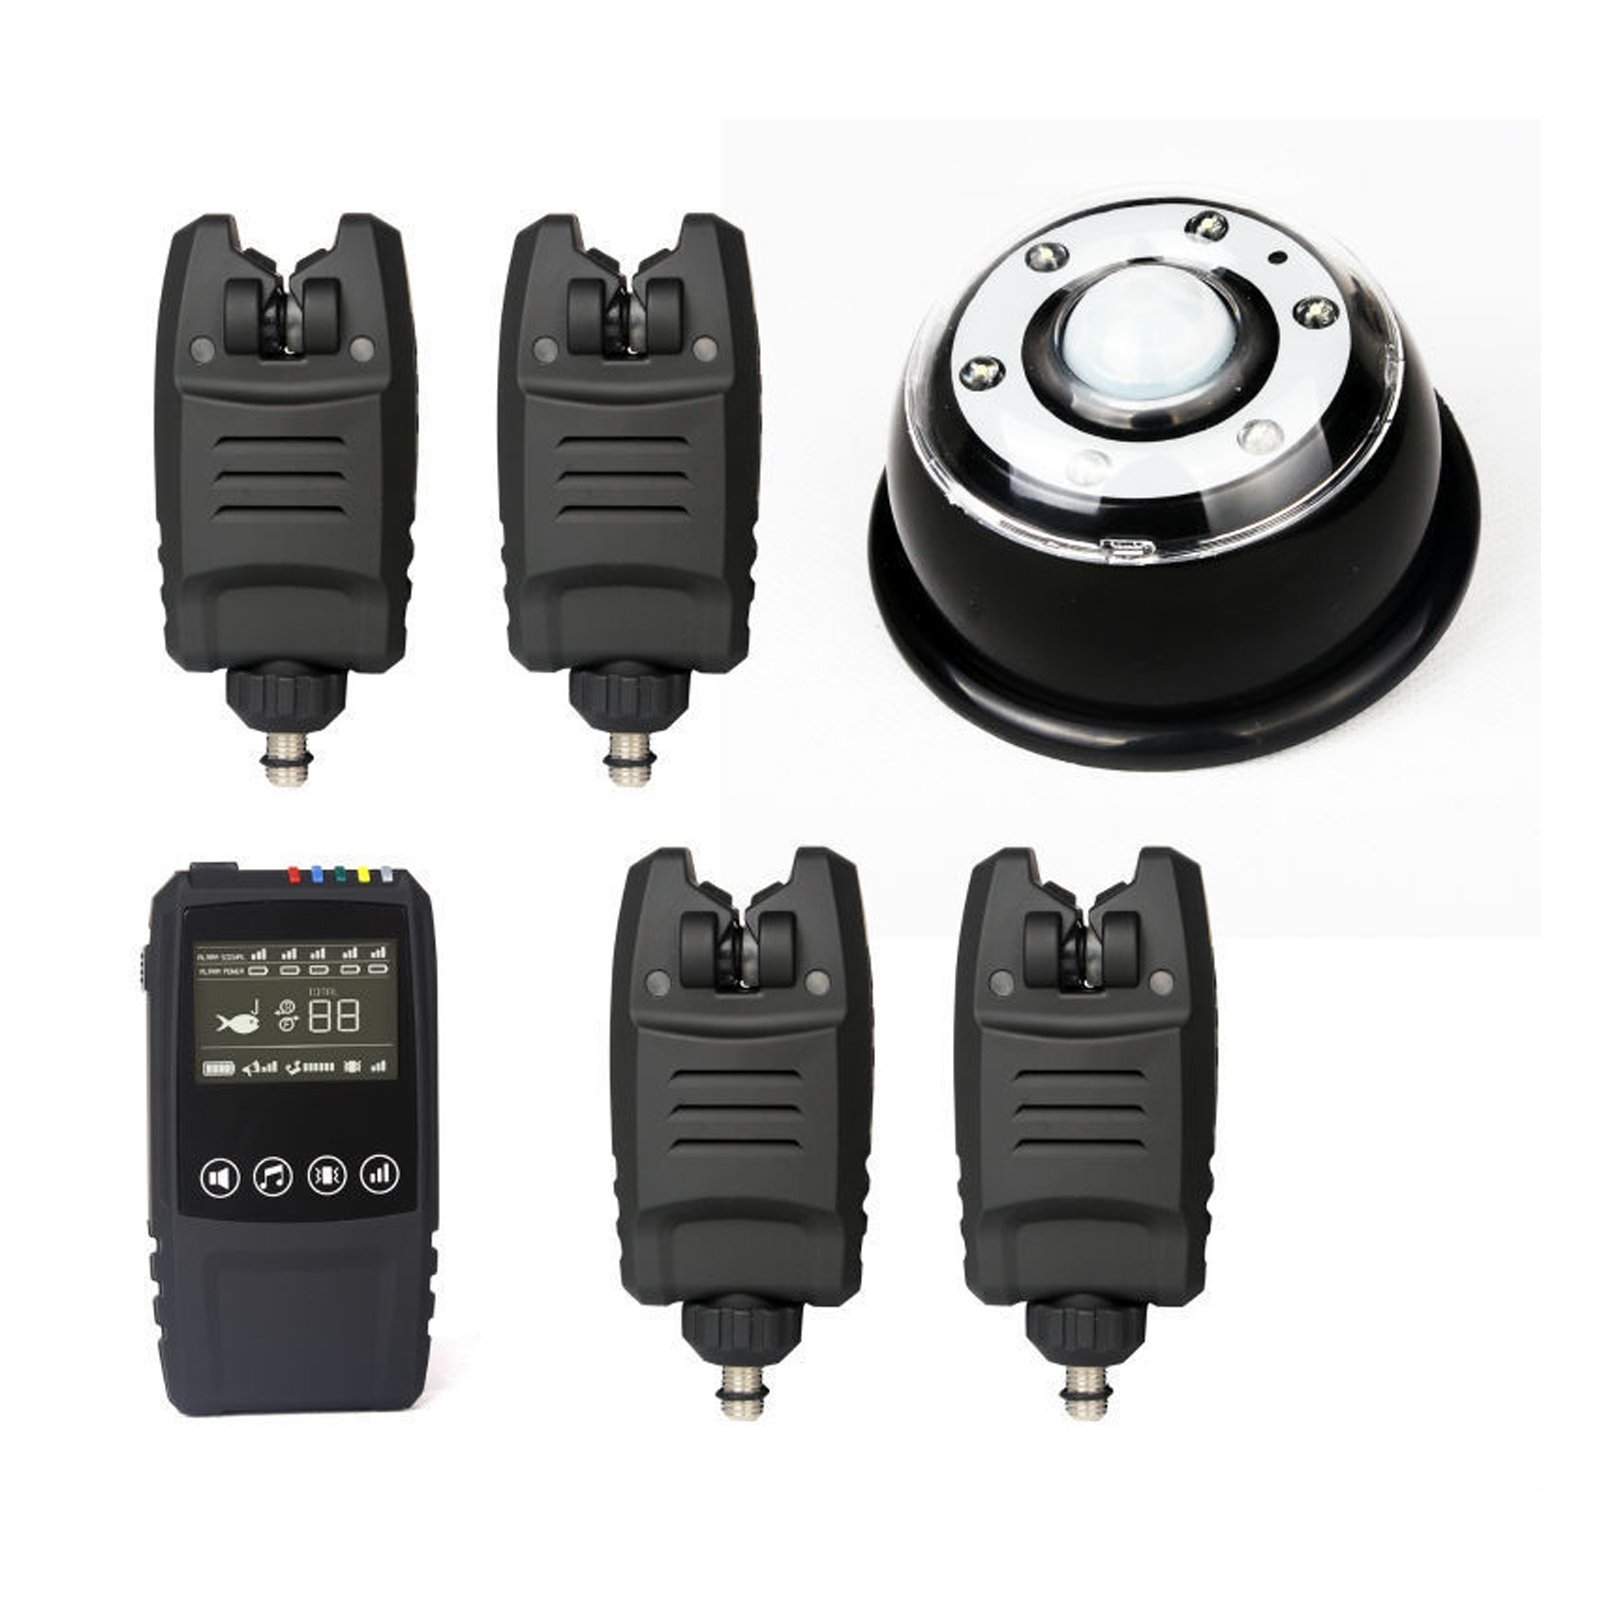 Waterproof Wireless Carp Fishing Bite Alarm Set 4Bite Alarms +1Receiver+1Lamp Receiver by OLDCARP